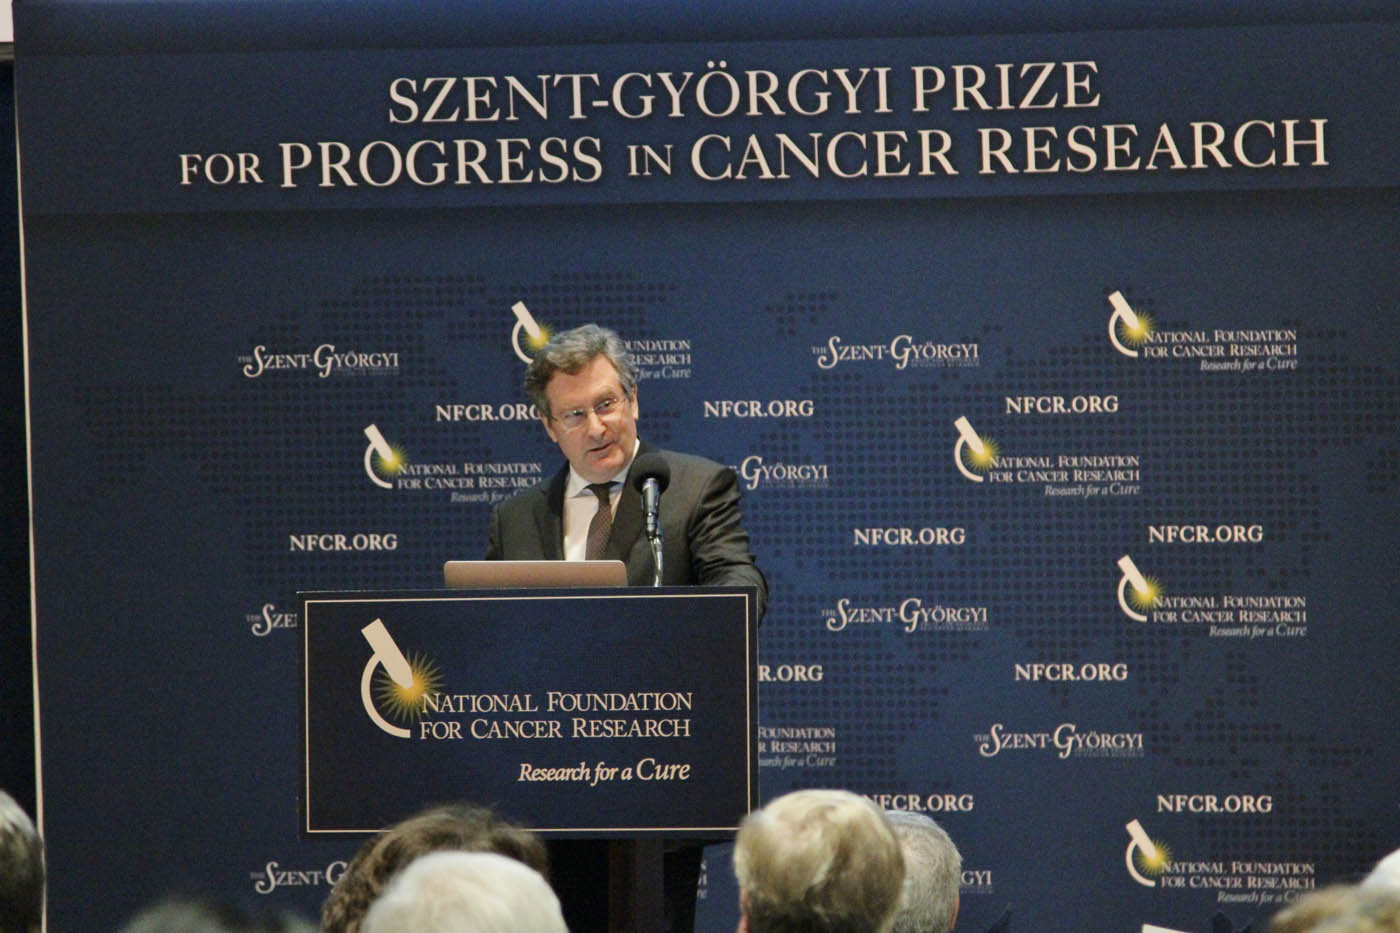 Dr. Michael Hall thanking all those that have helped him along the way while receiving the Szent-Gyorgyi Prize for Progress in Cancer Research